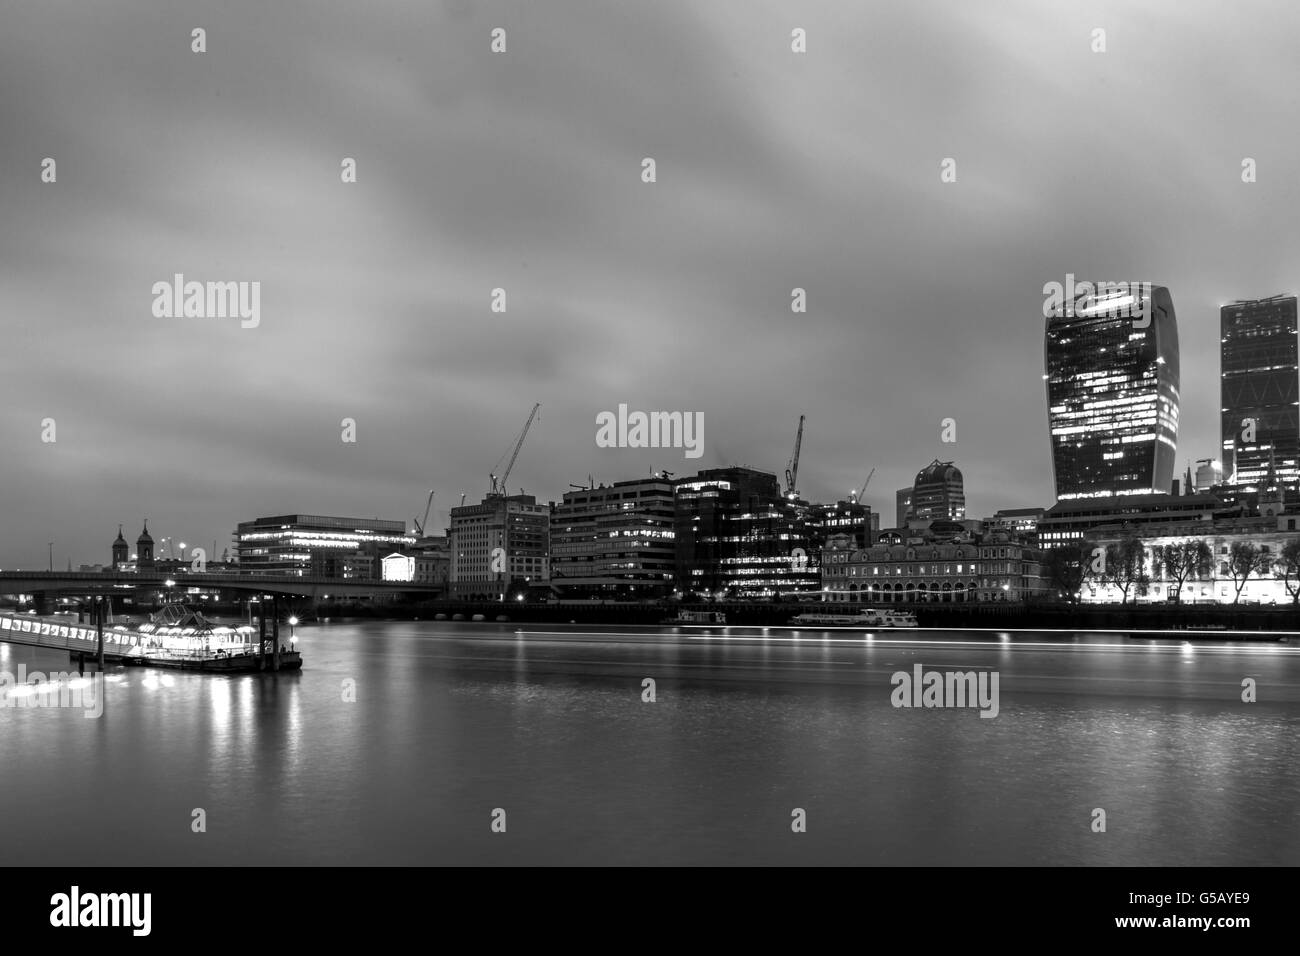 View of the City of London and the River Thames - Stock Image